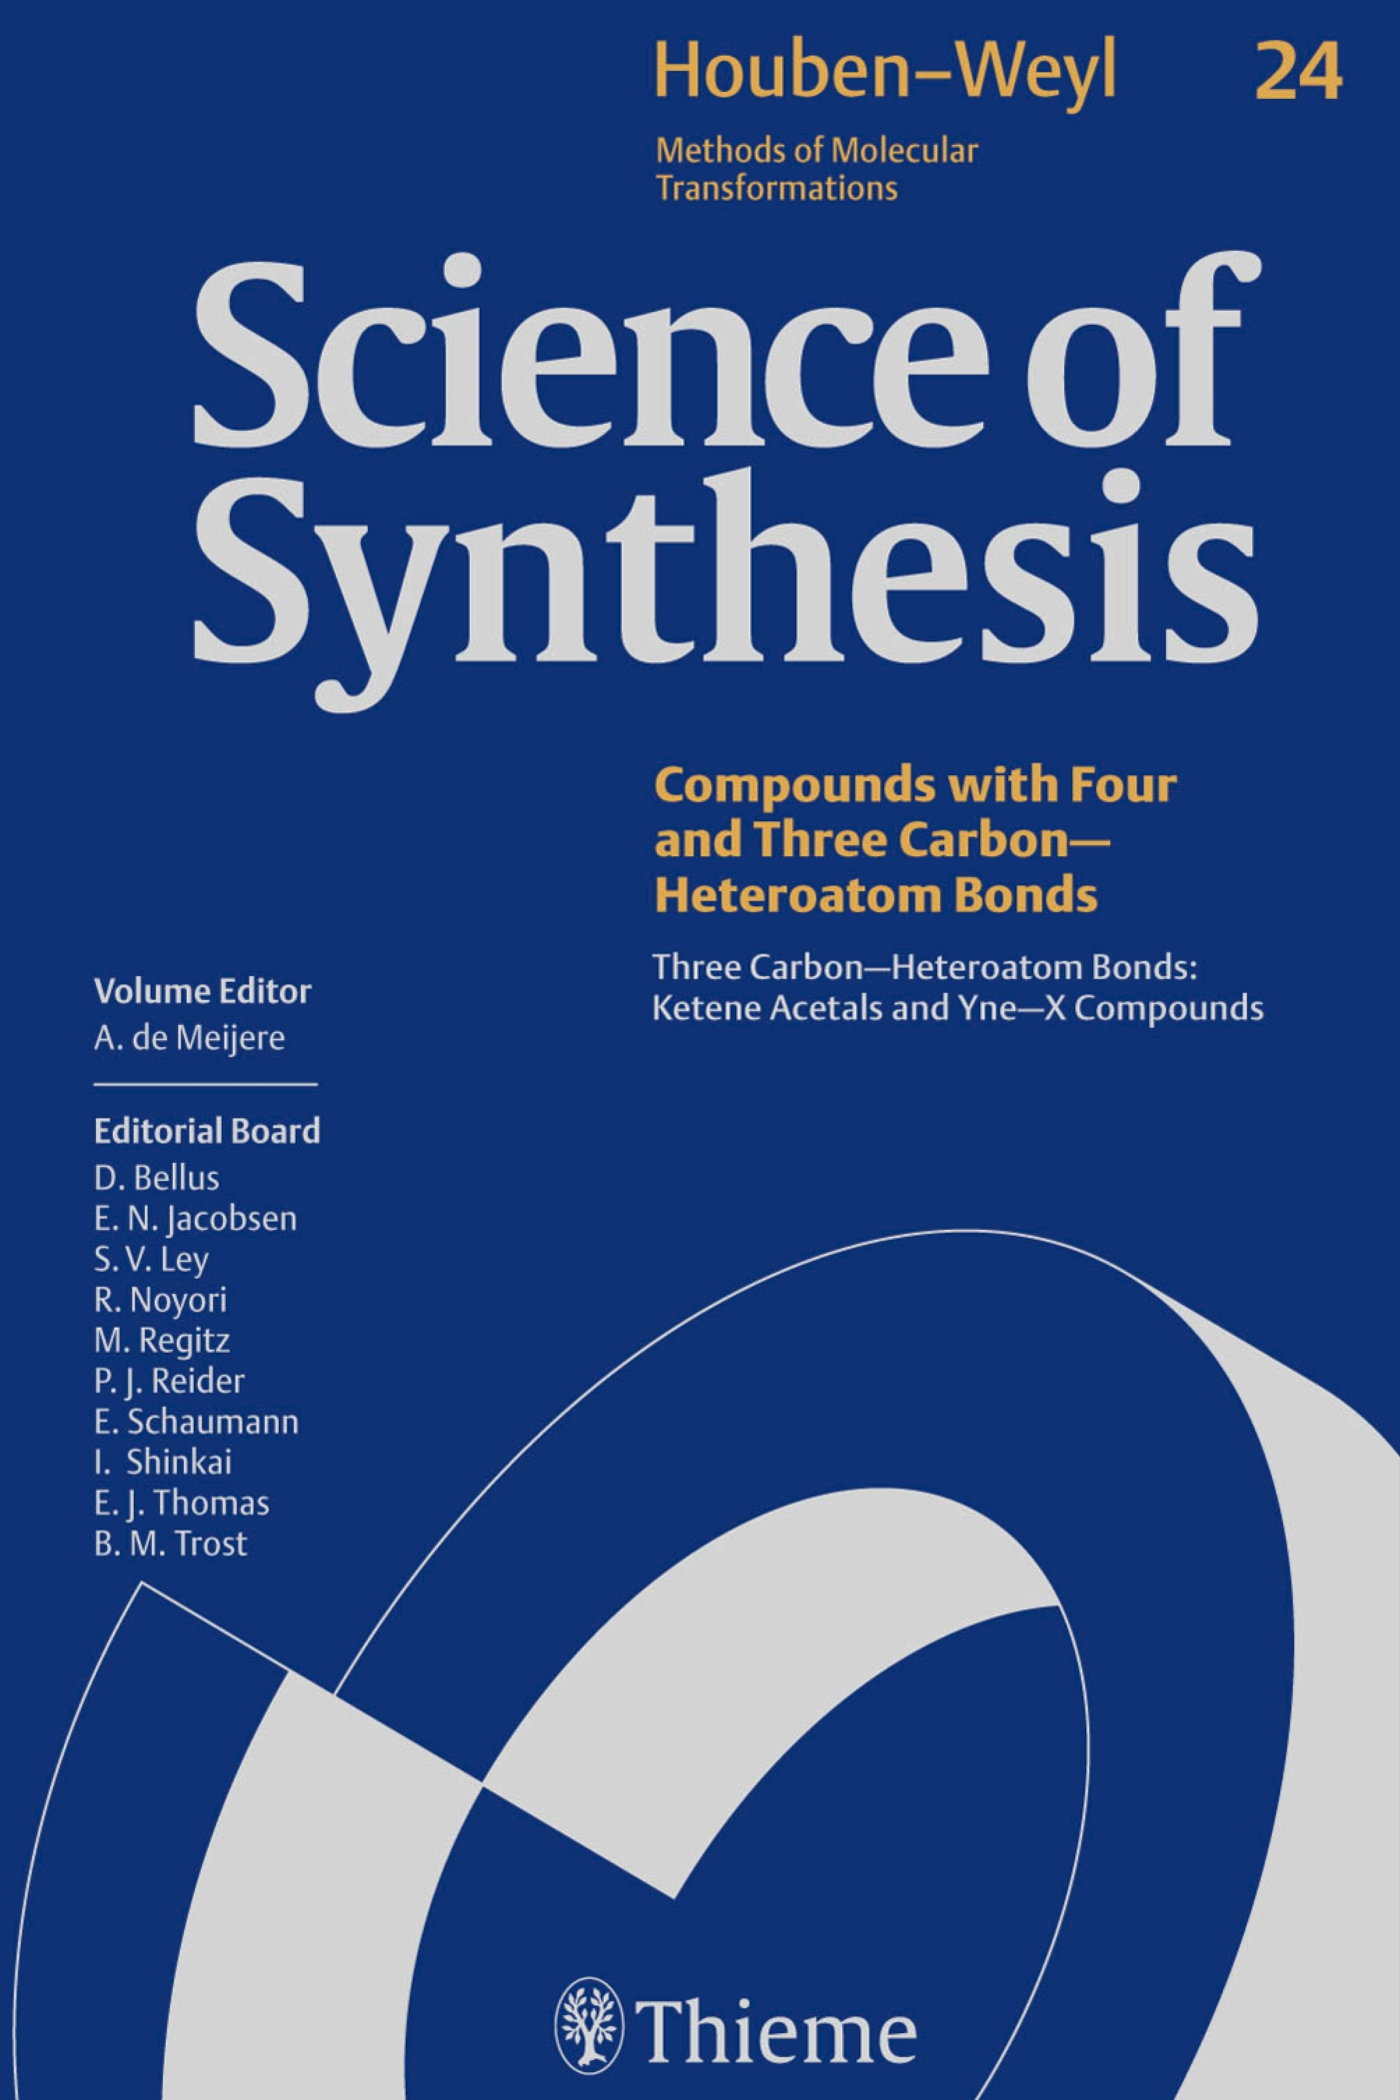 Science of Synthesis: Houben-Weyl Methods of Molecular Transformations  Vol. 24